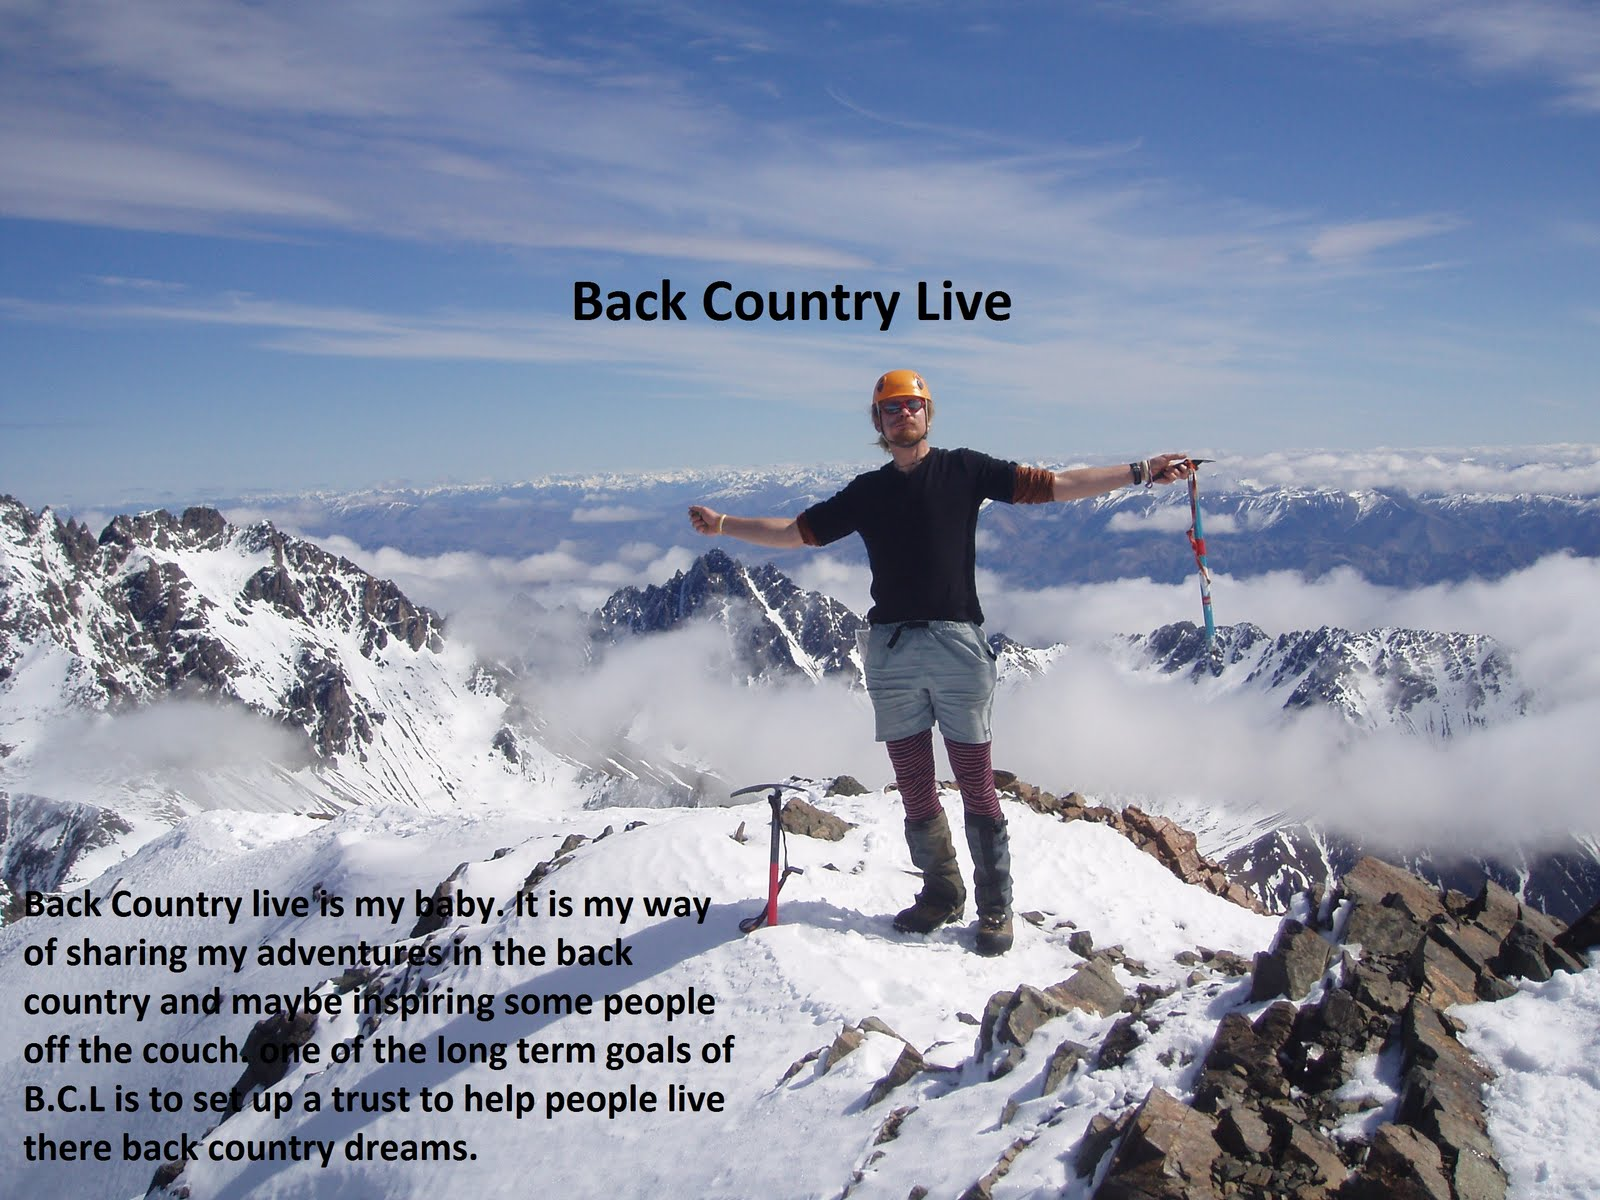 Back Country Live